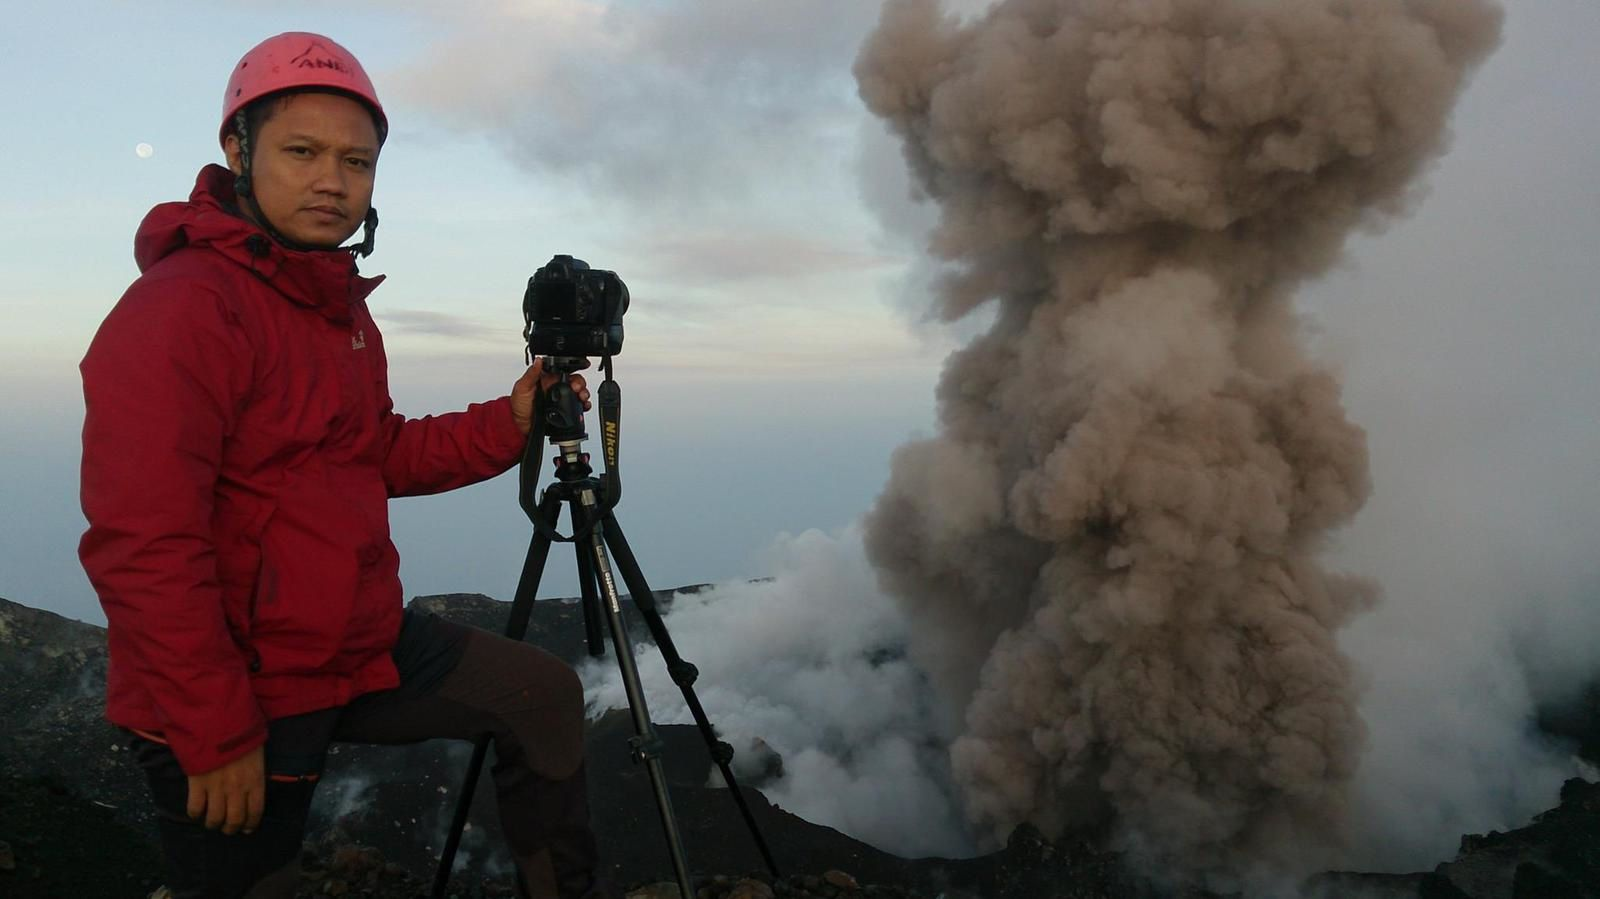 Ash venting au Slamet - 14.03.2014 - photo Andi / World Geographic Exkursionen